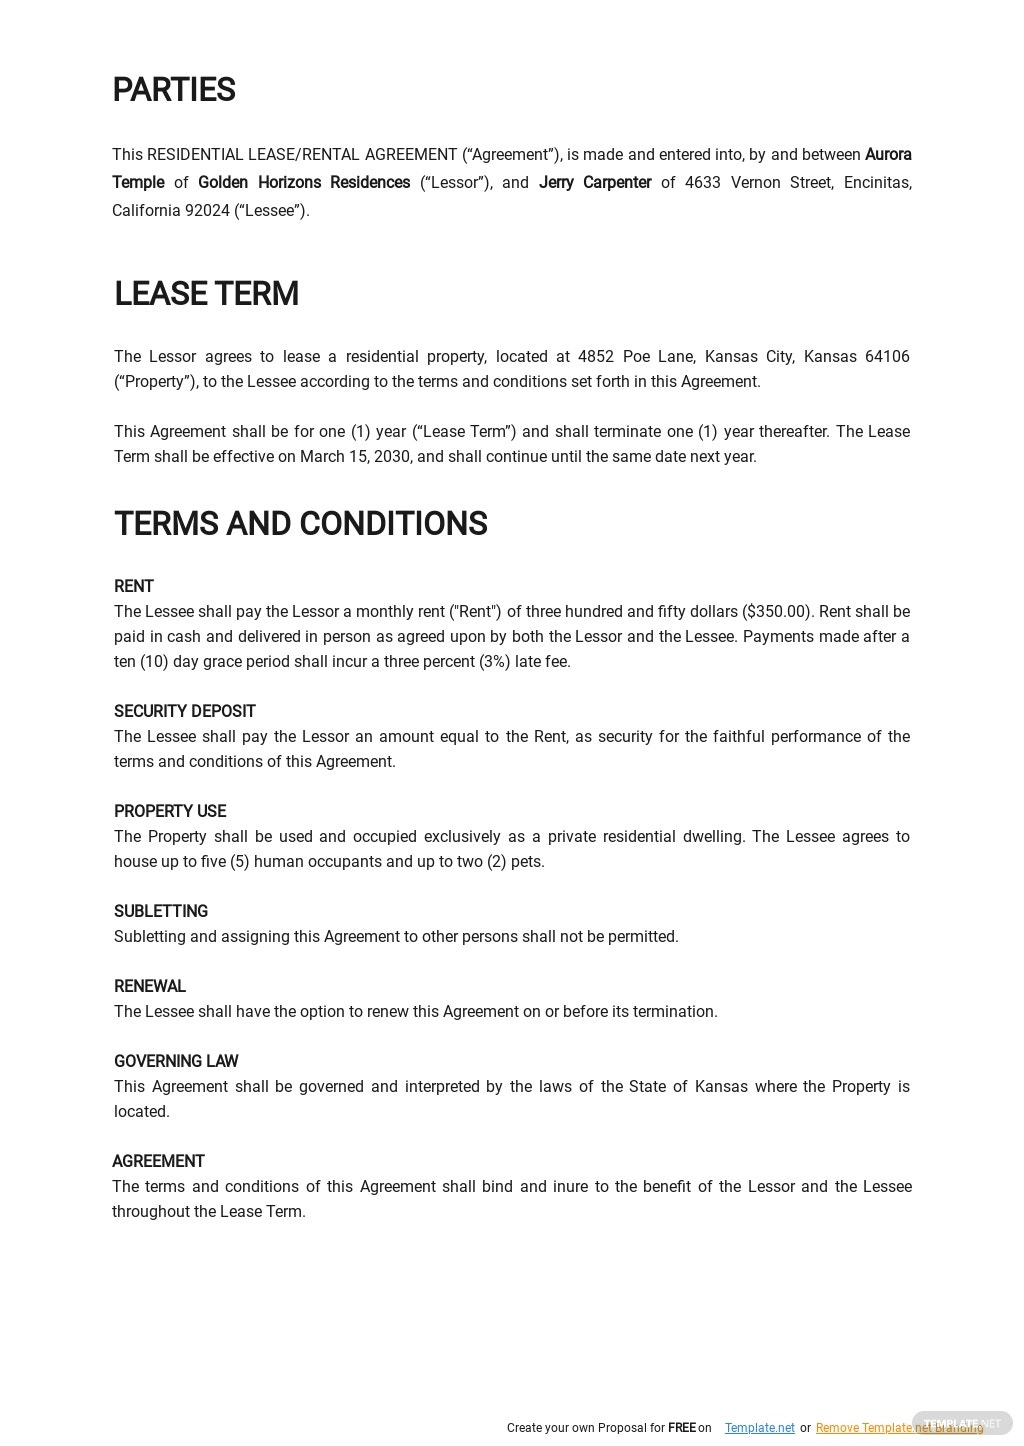 Rental Agreement or Residential Lease Template 1.jpe